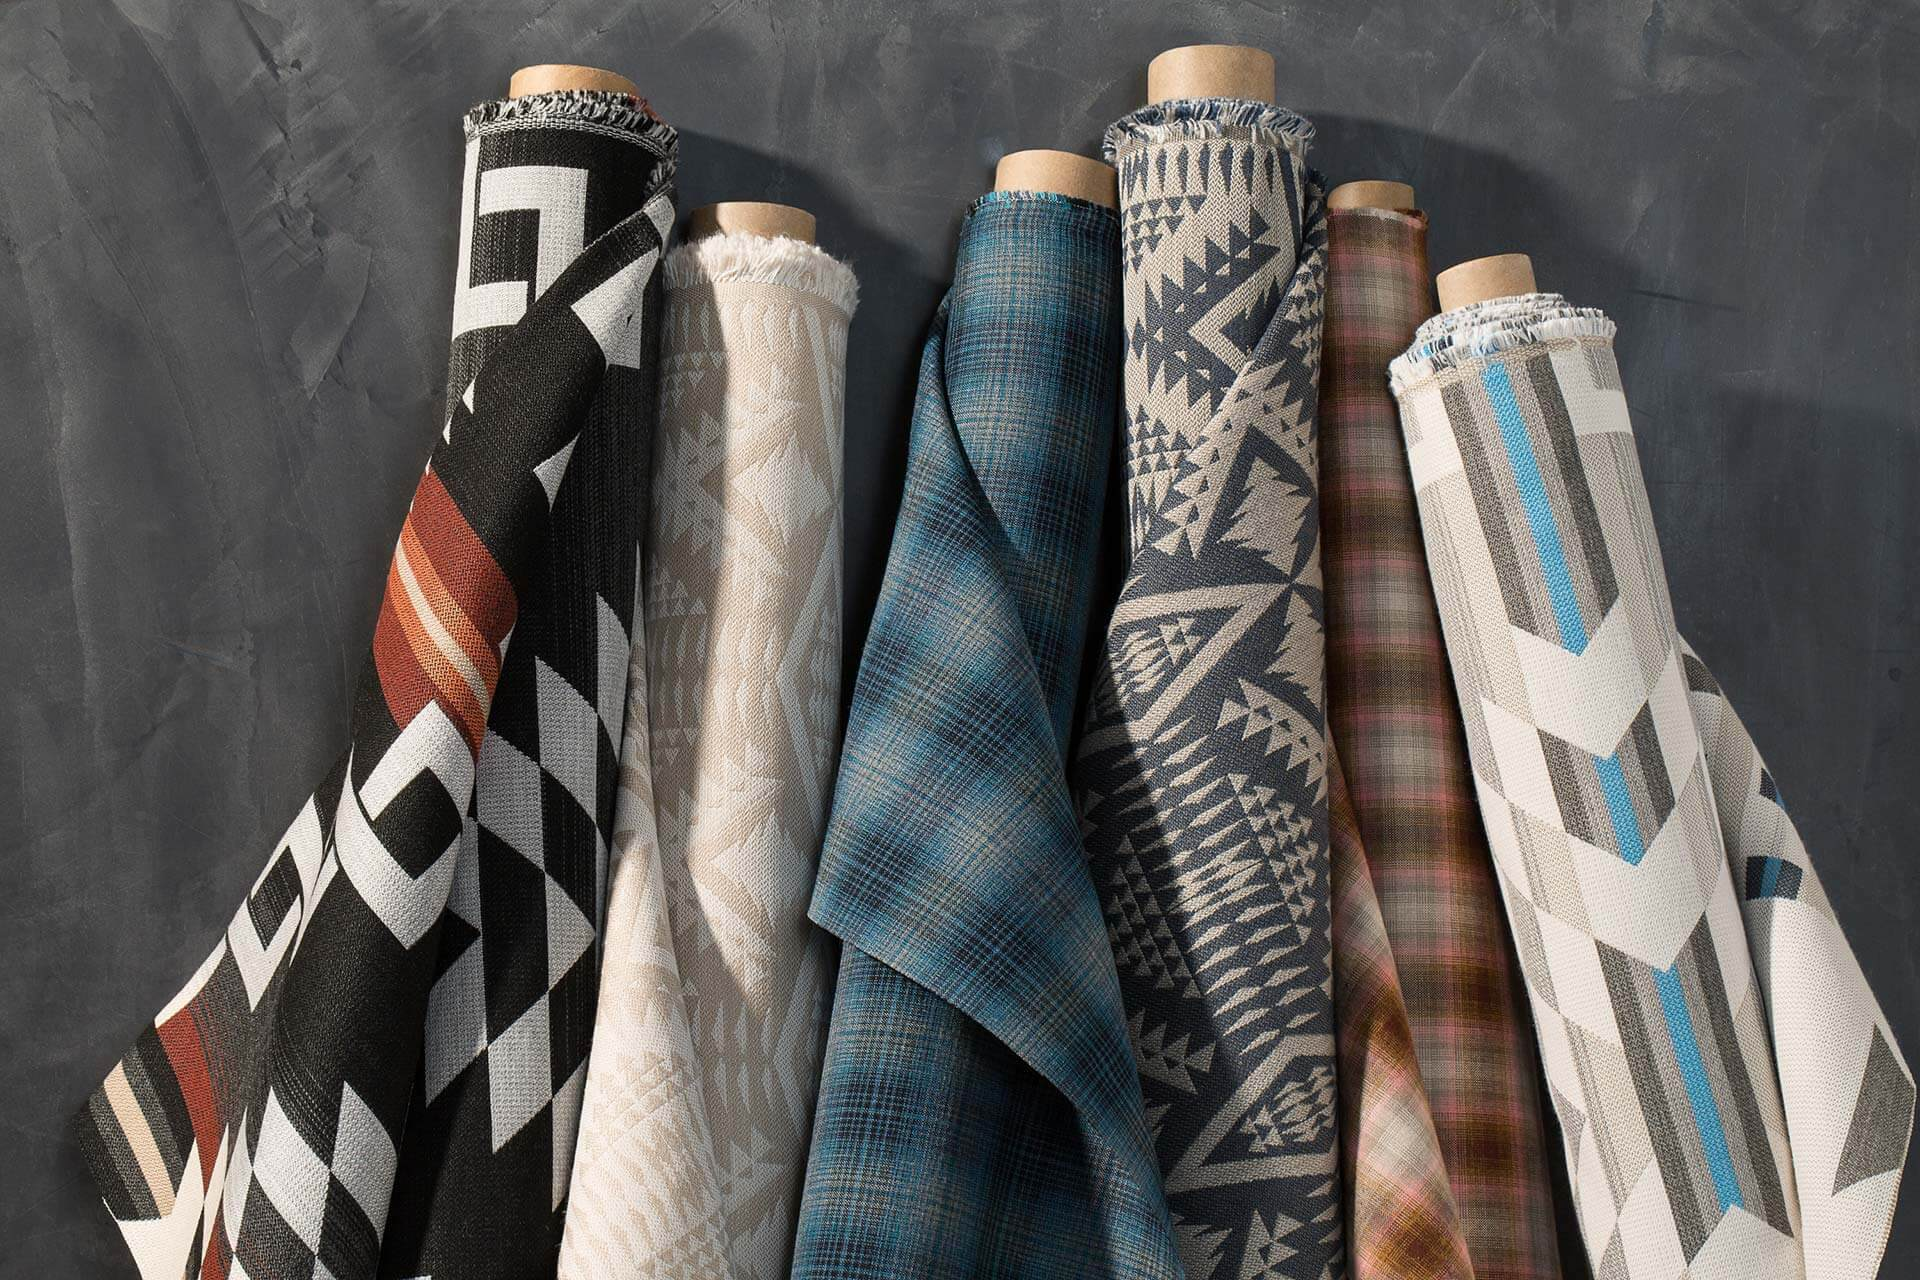 Selected fabrics from Pendleton by Sunbrella, available through The Shade Store